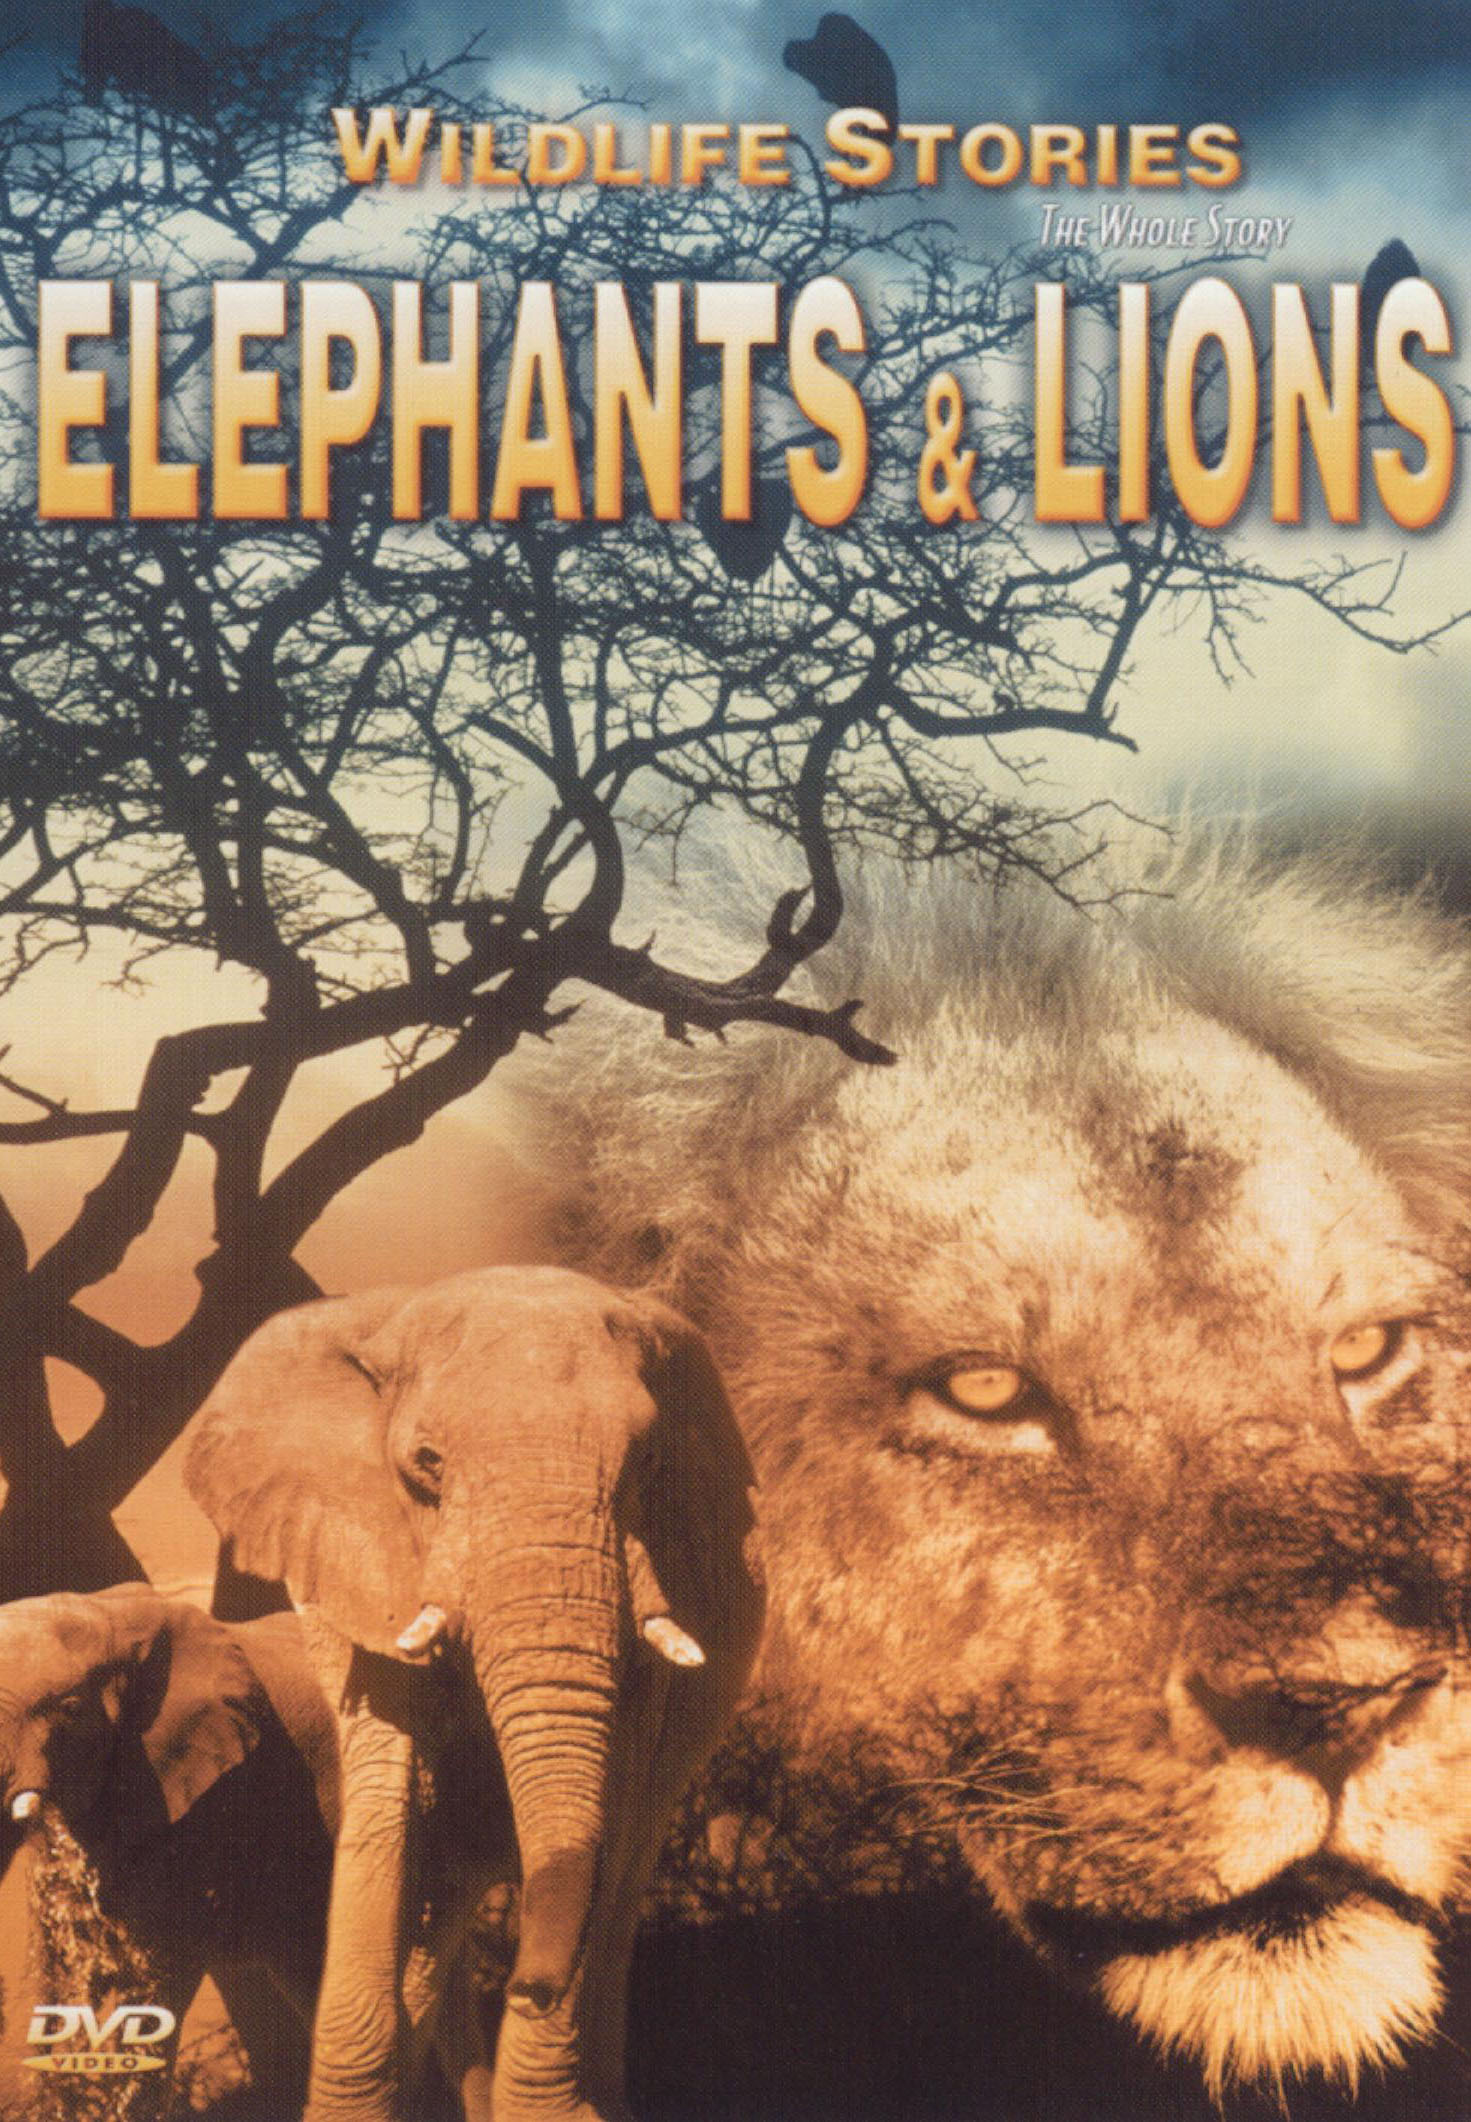 Wildlife Stories: The Whole Story - Elephants and Lions